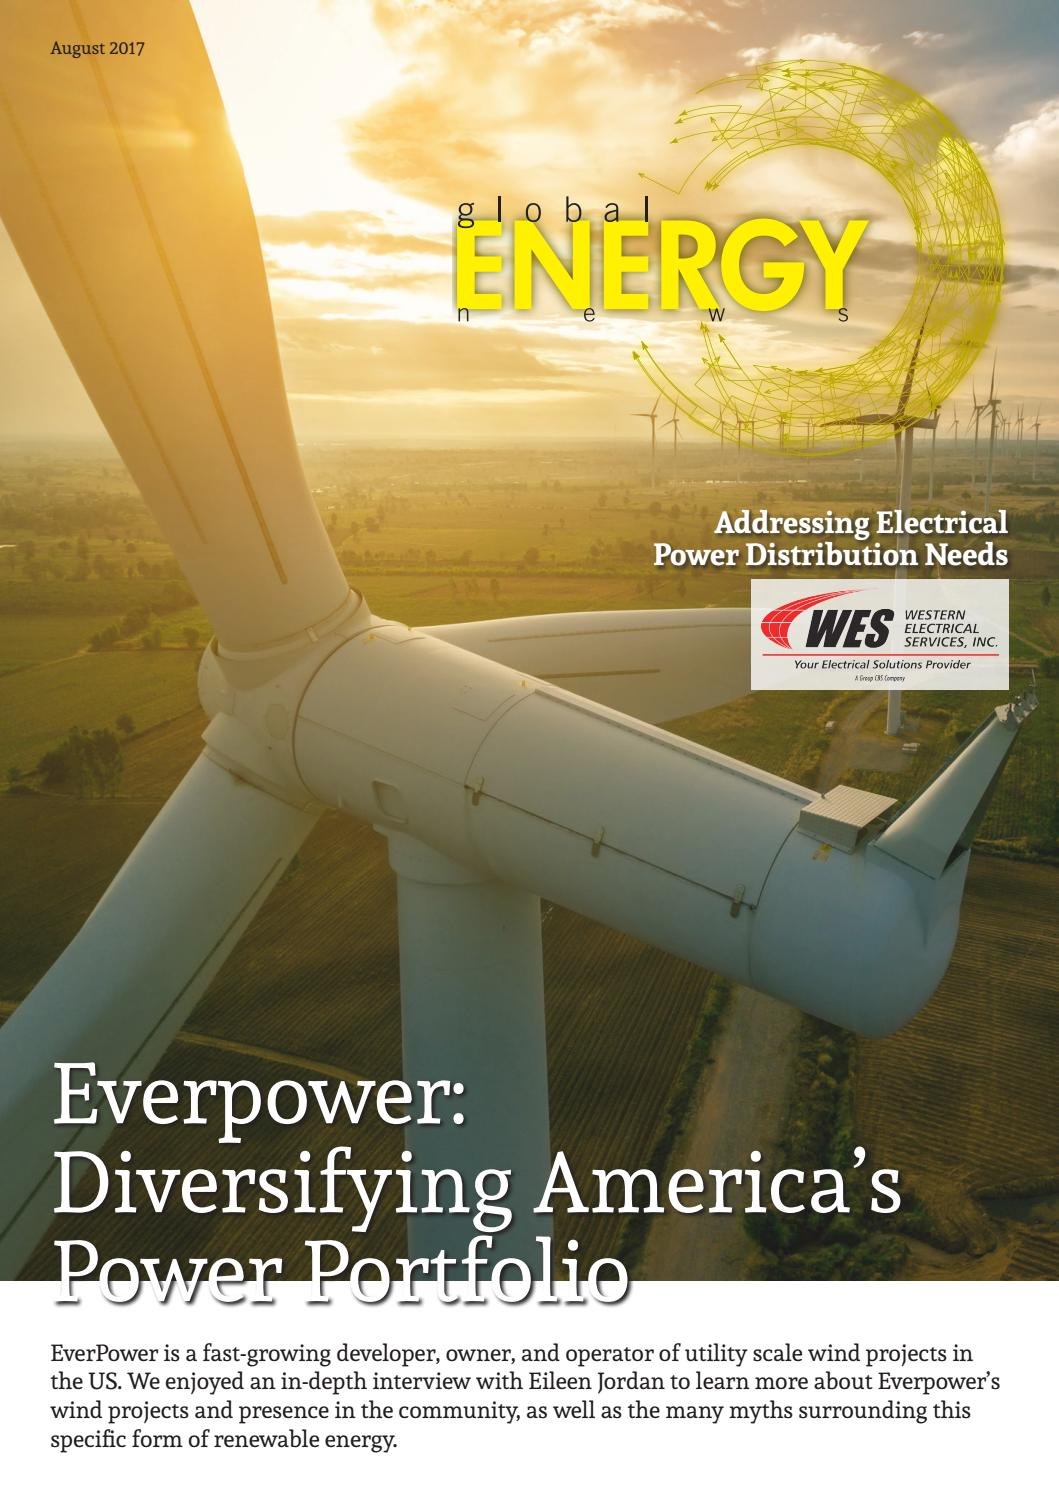 Global Energy News August 2017 By Ai Media Issuu Type Or Bulk Oil Circuit Breaker Now Obsolete Your Electrical Home